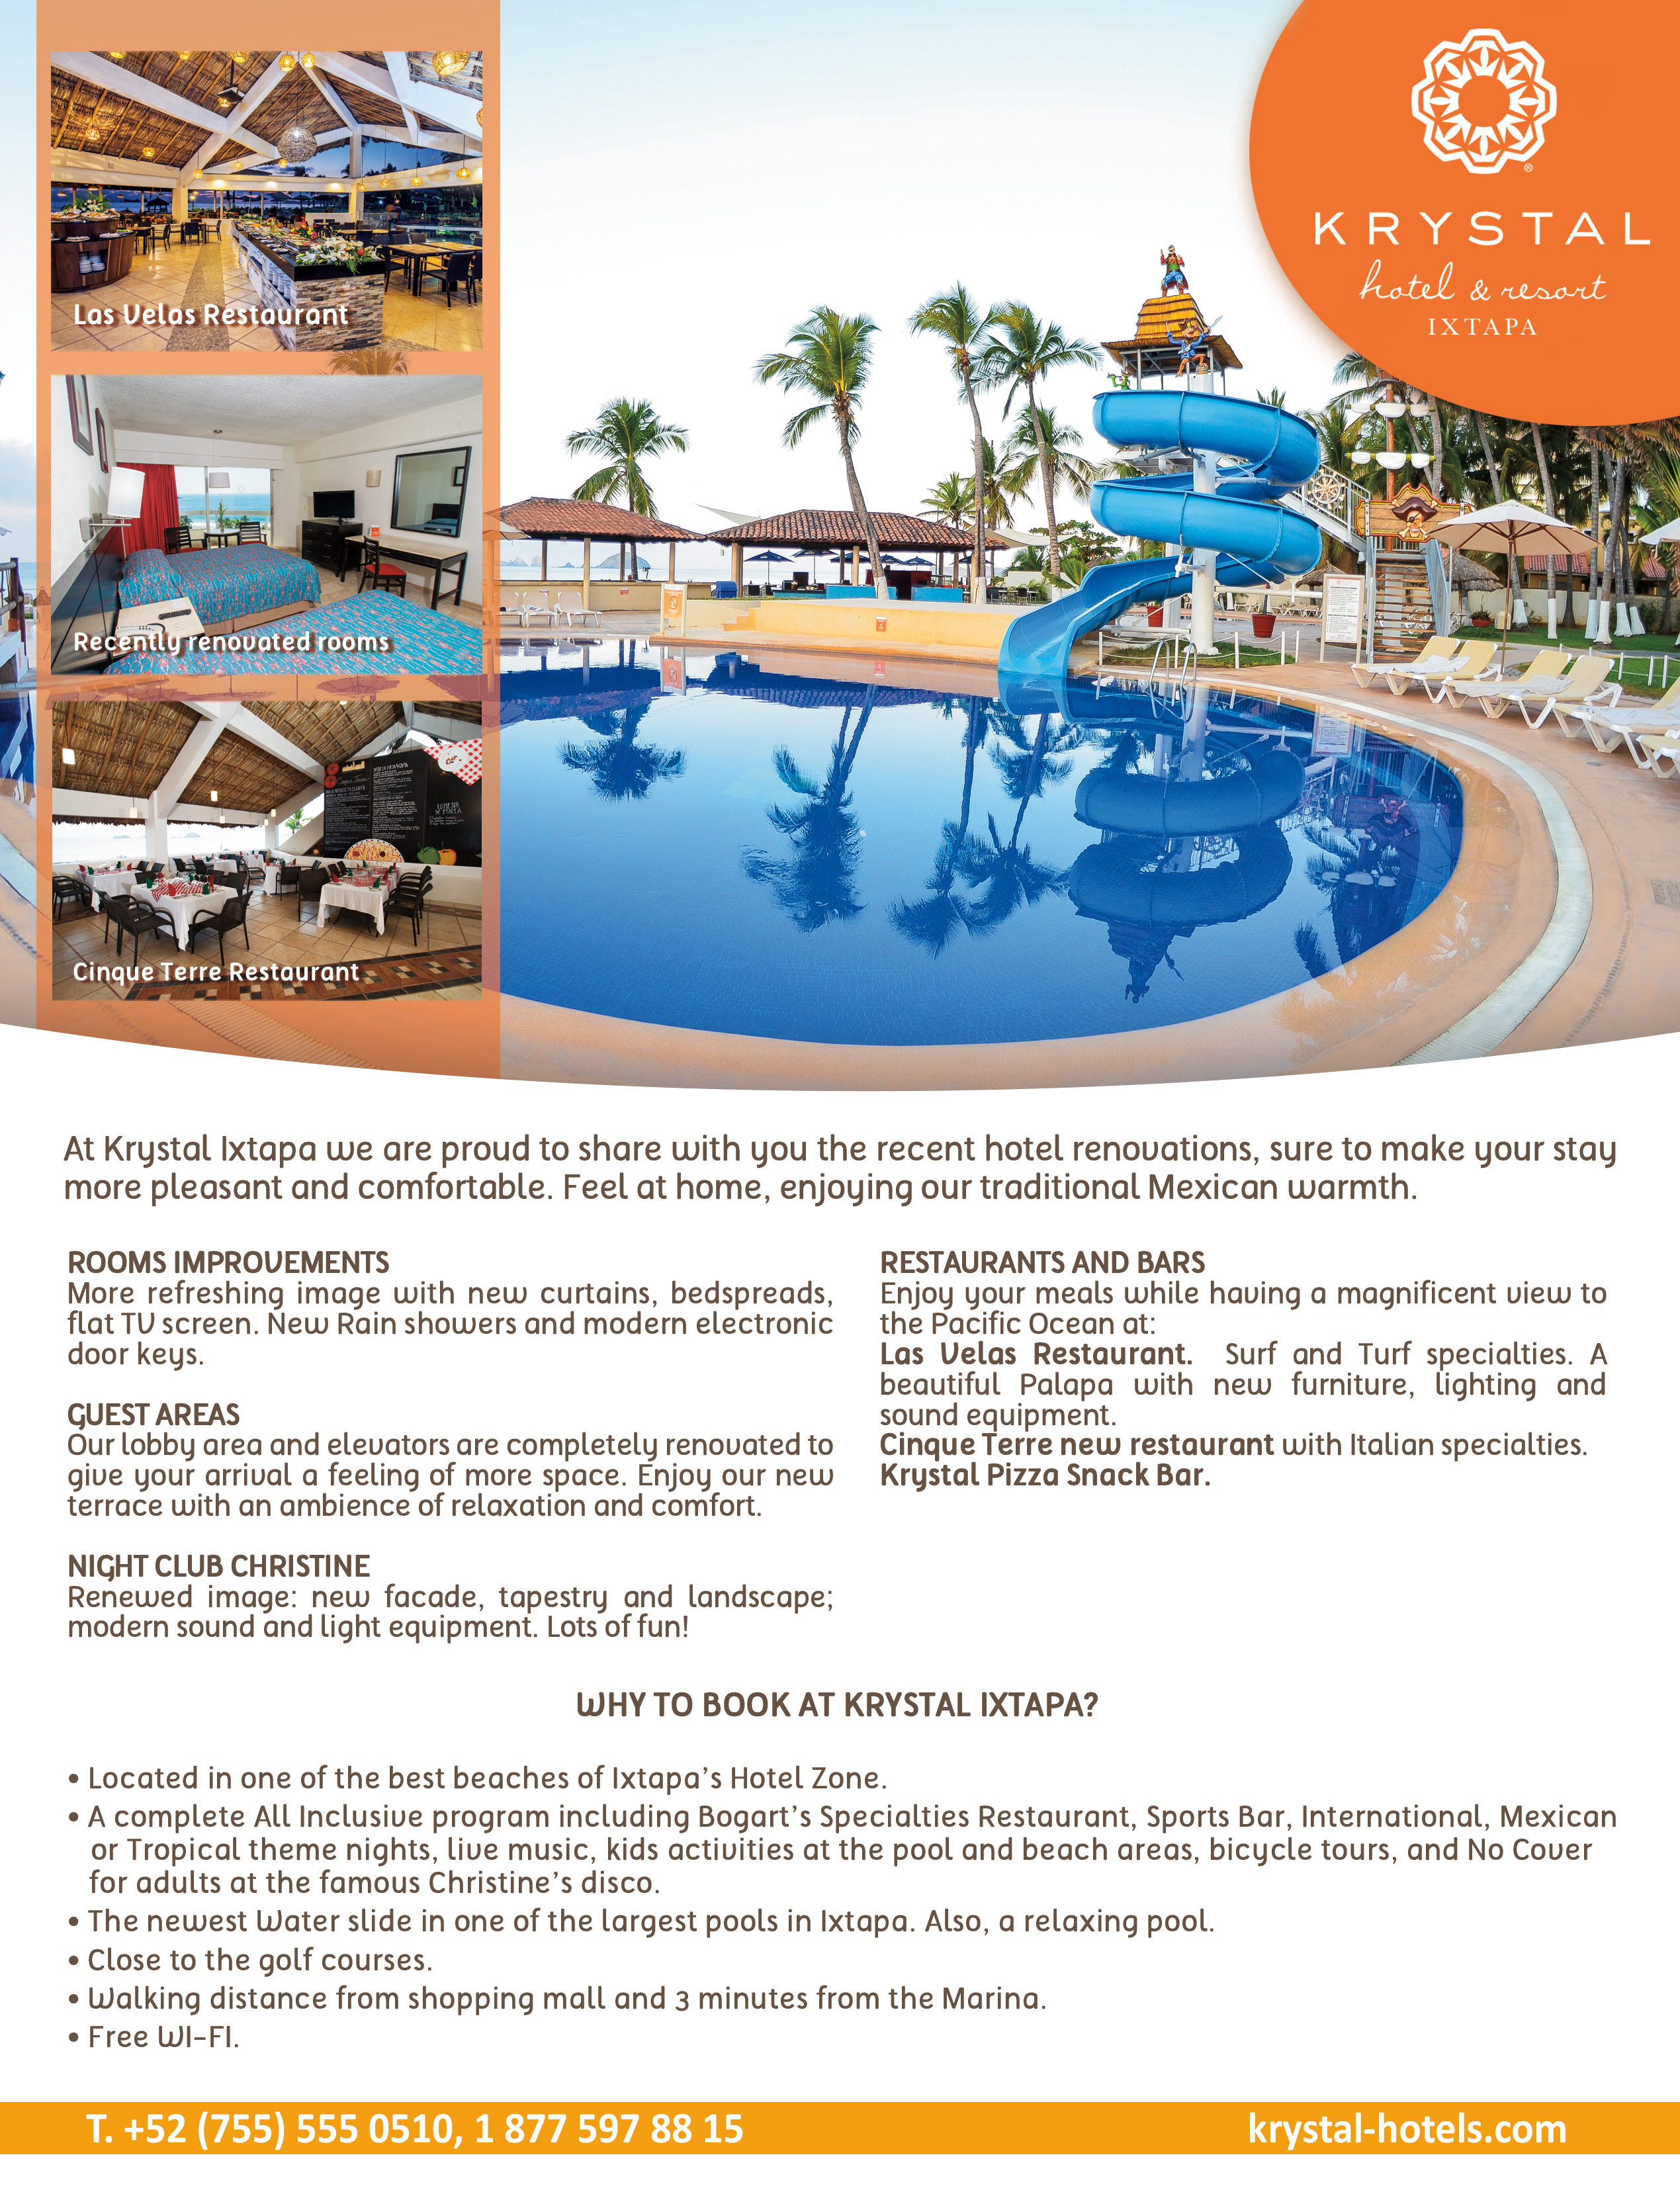 http://www.daemery.com/detm/images/Krystal_Ixtapa_FLYER-Renovations2017(feb_2017).jpg